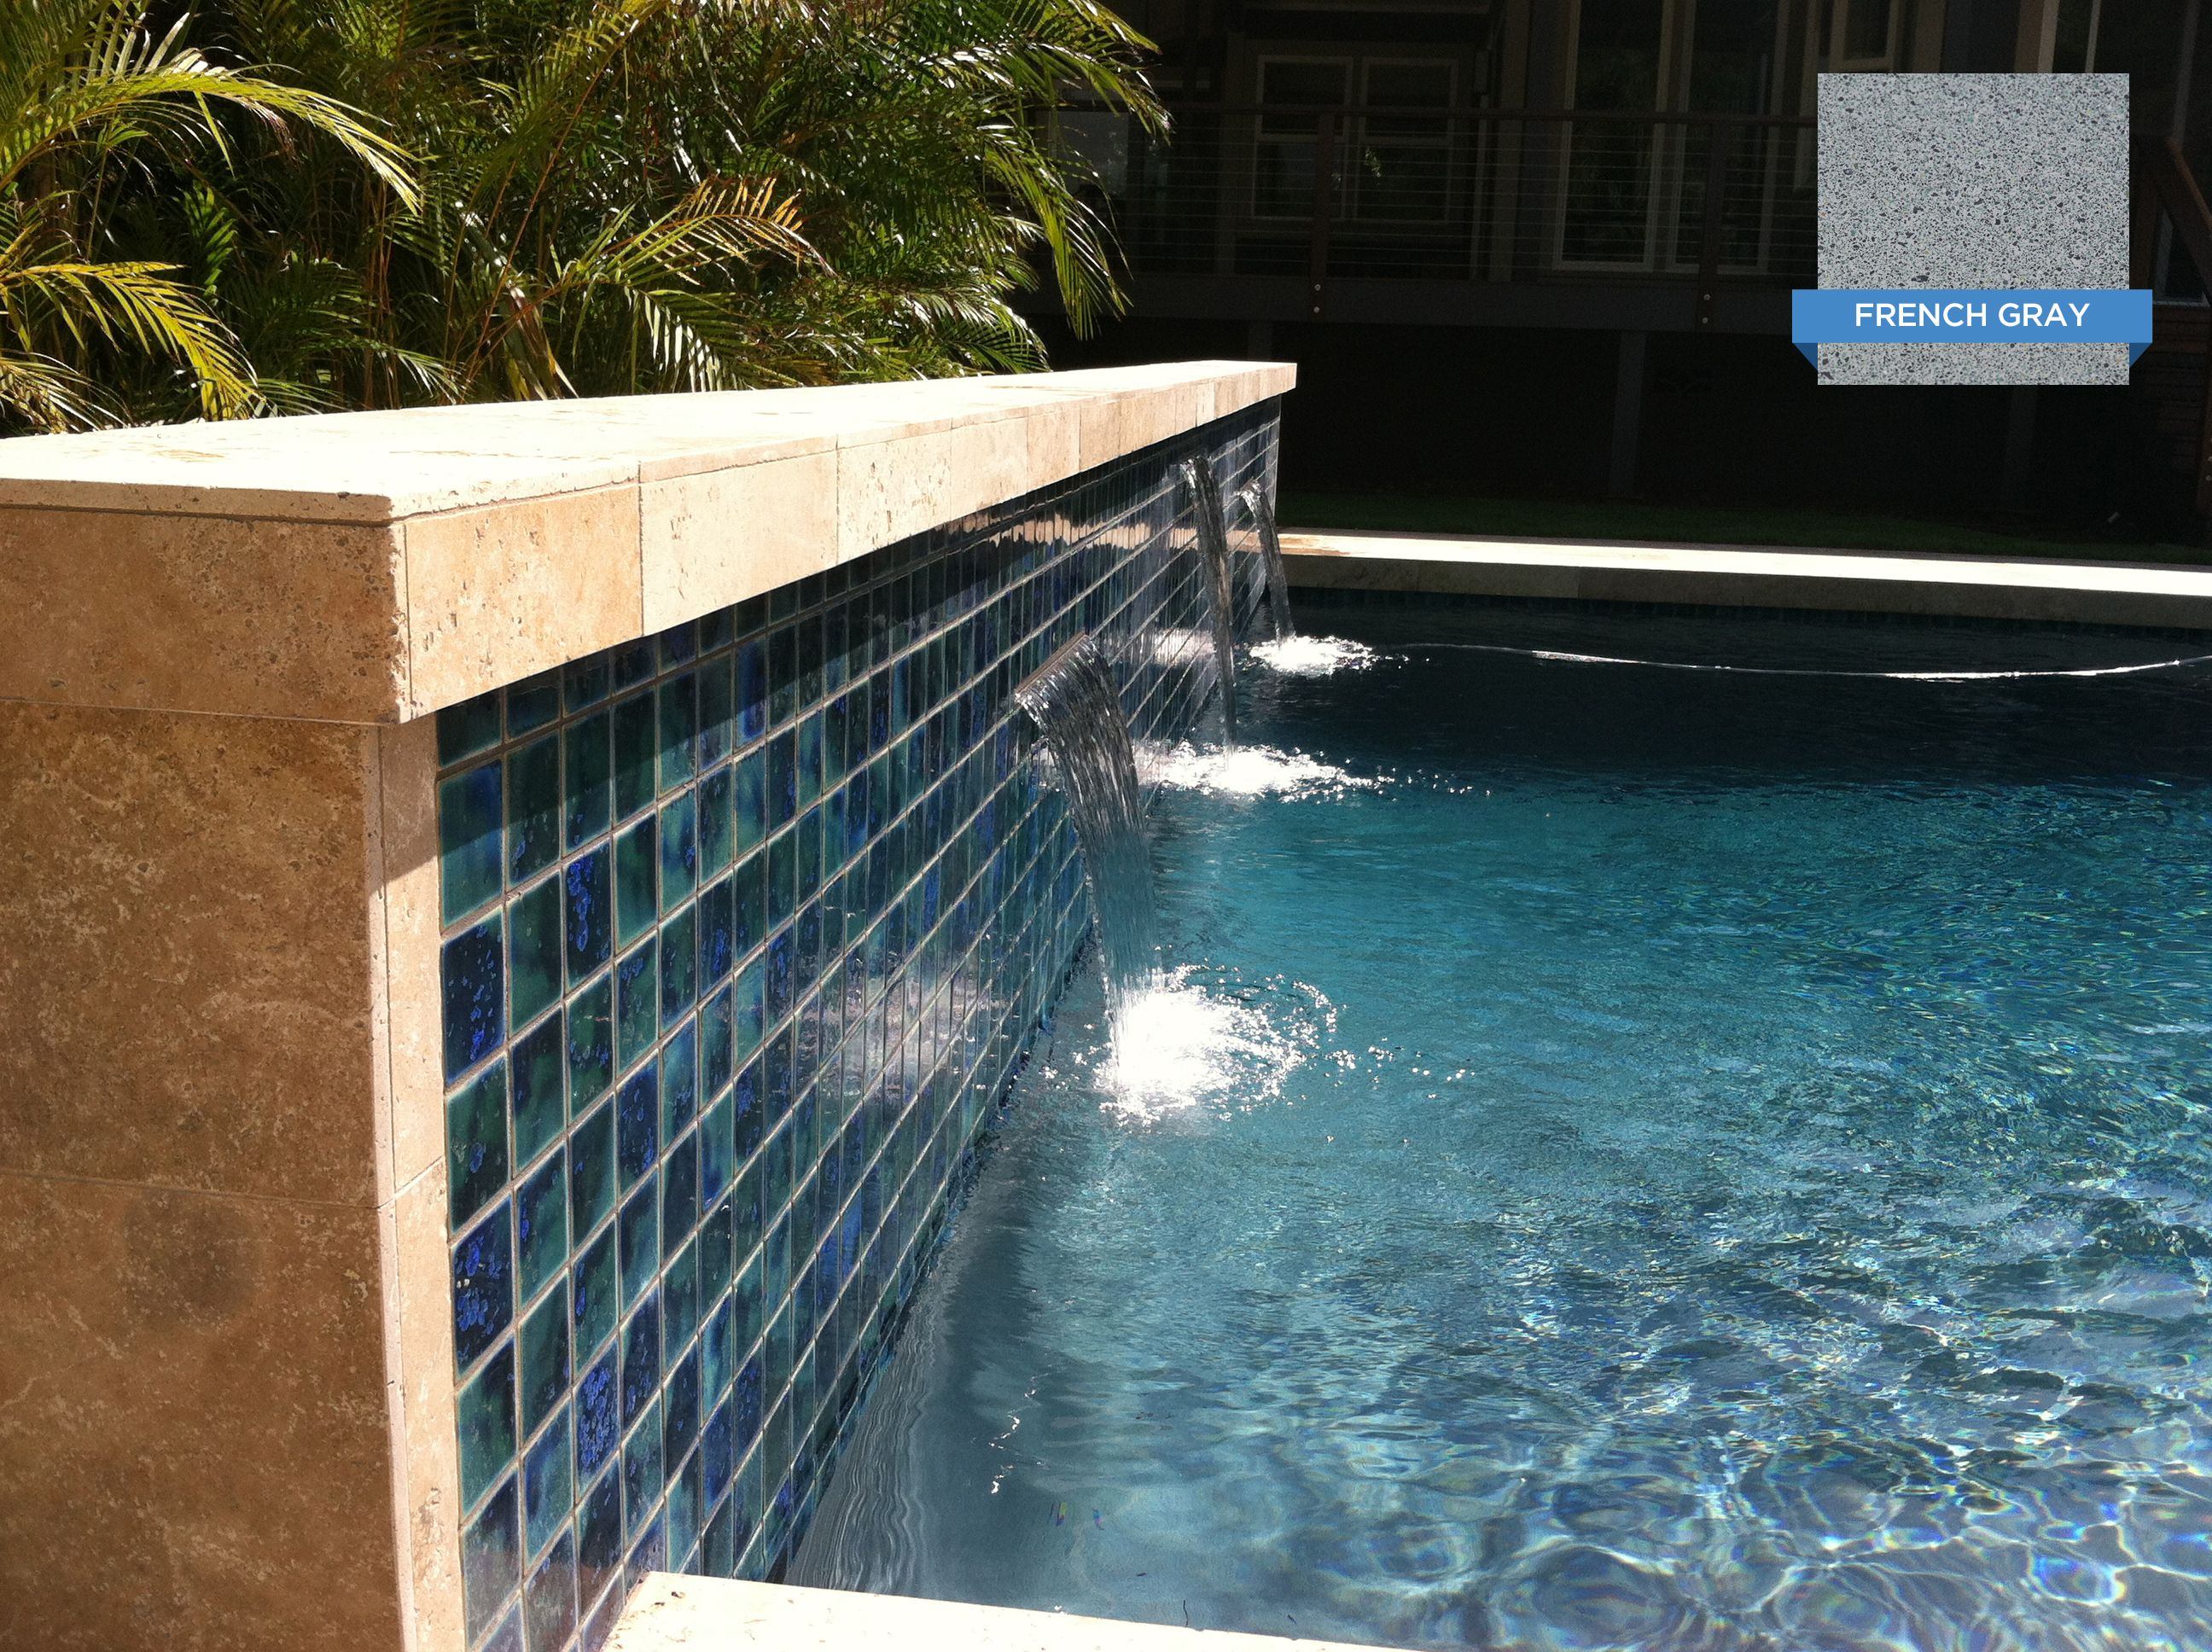 Wonderful Pool Finish Ideas For You To Copy: These Beautiful Tiles Blend Smoothly With The Water Color Created By Hydrazzo French Gray. Huber